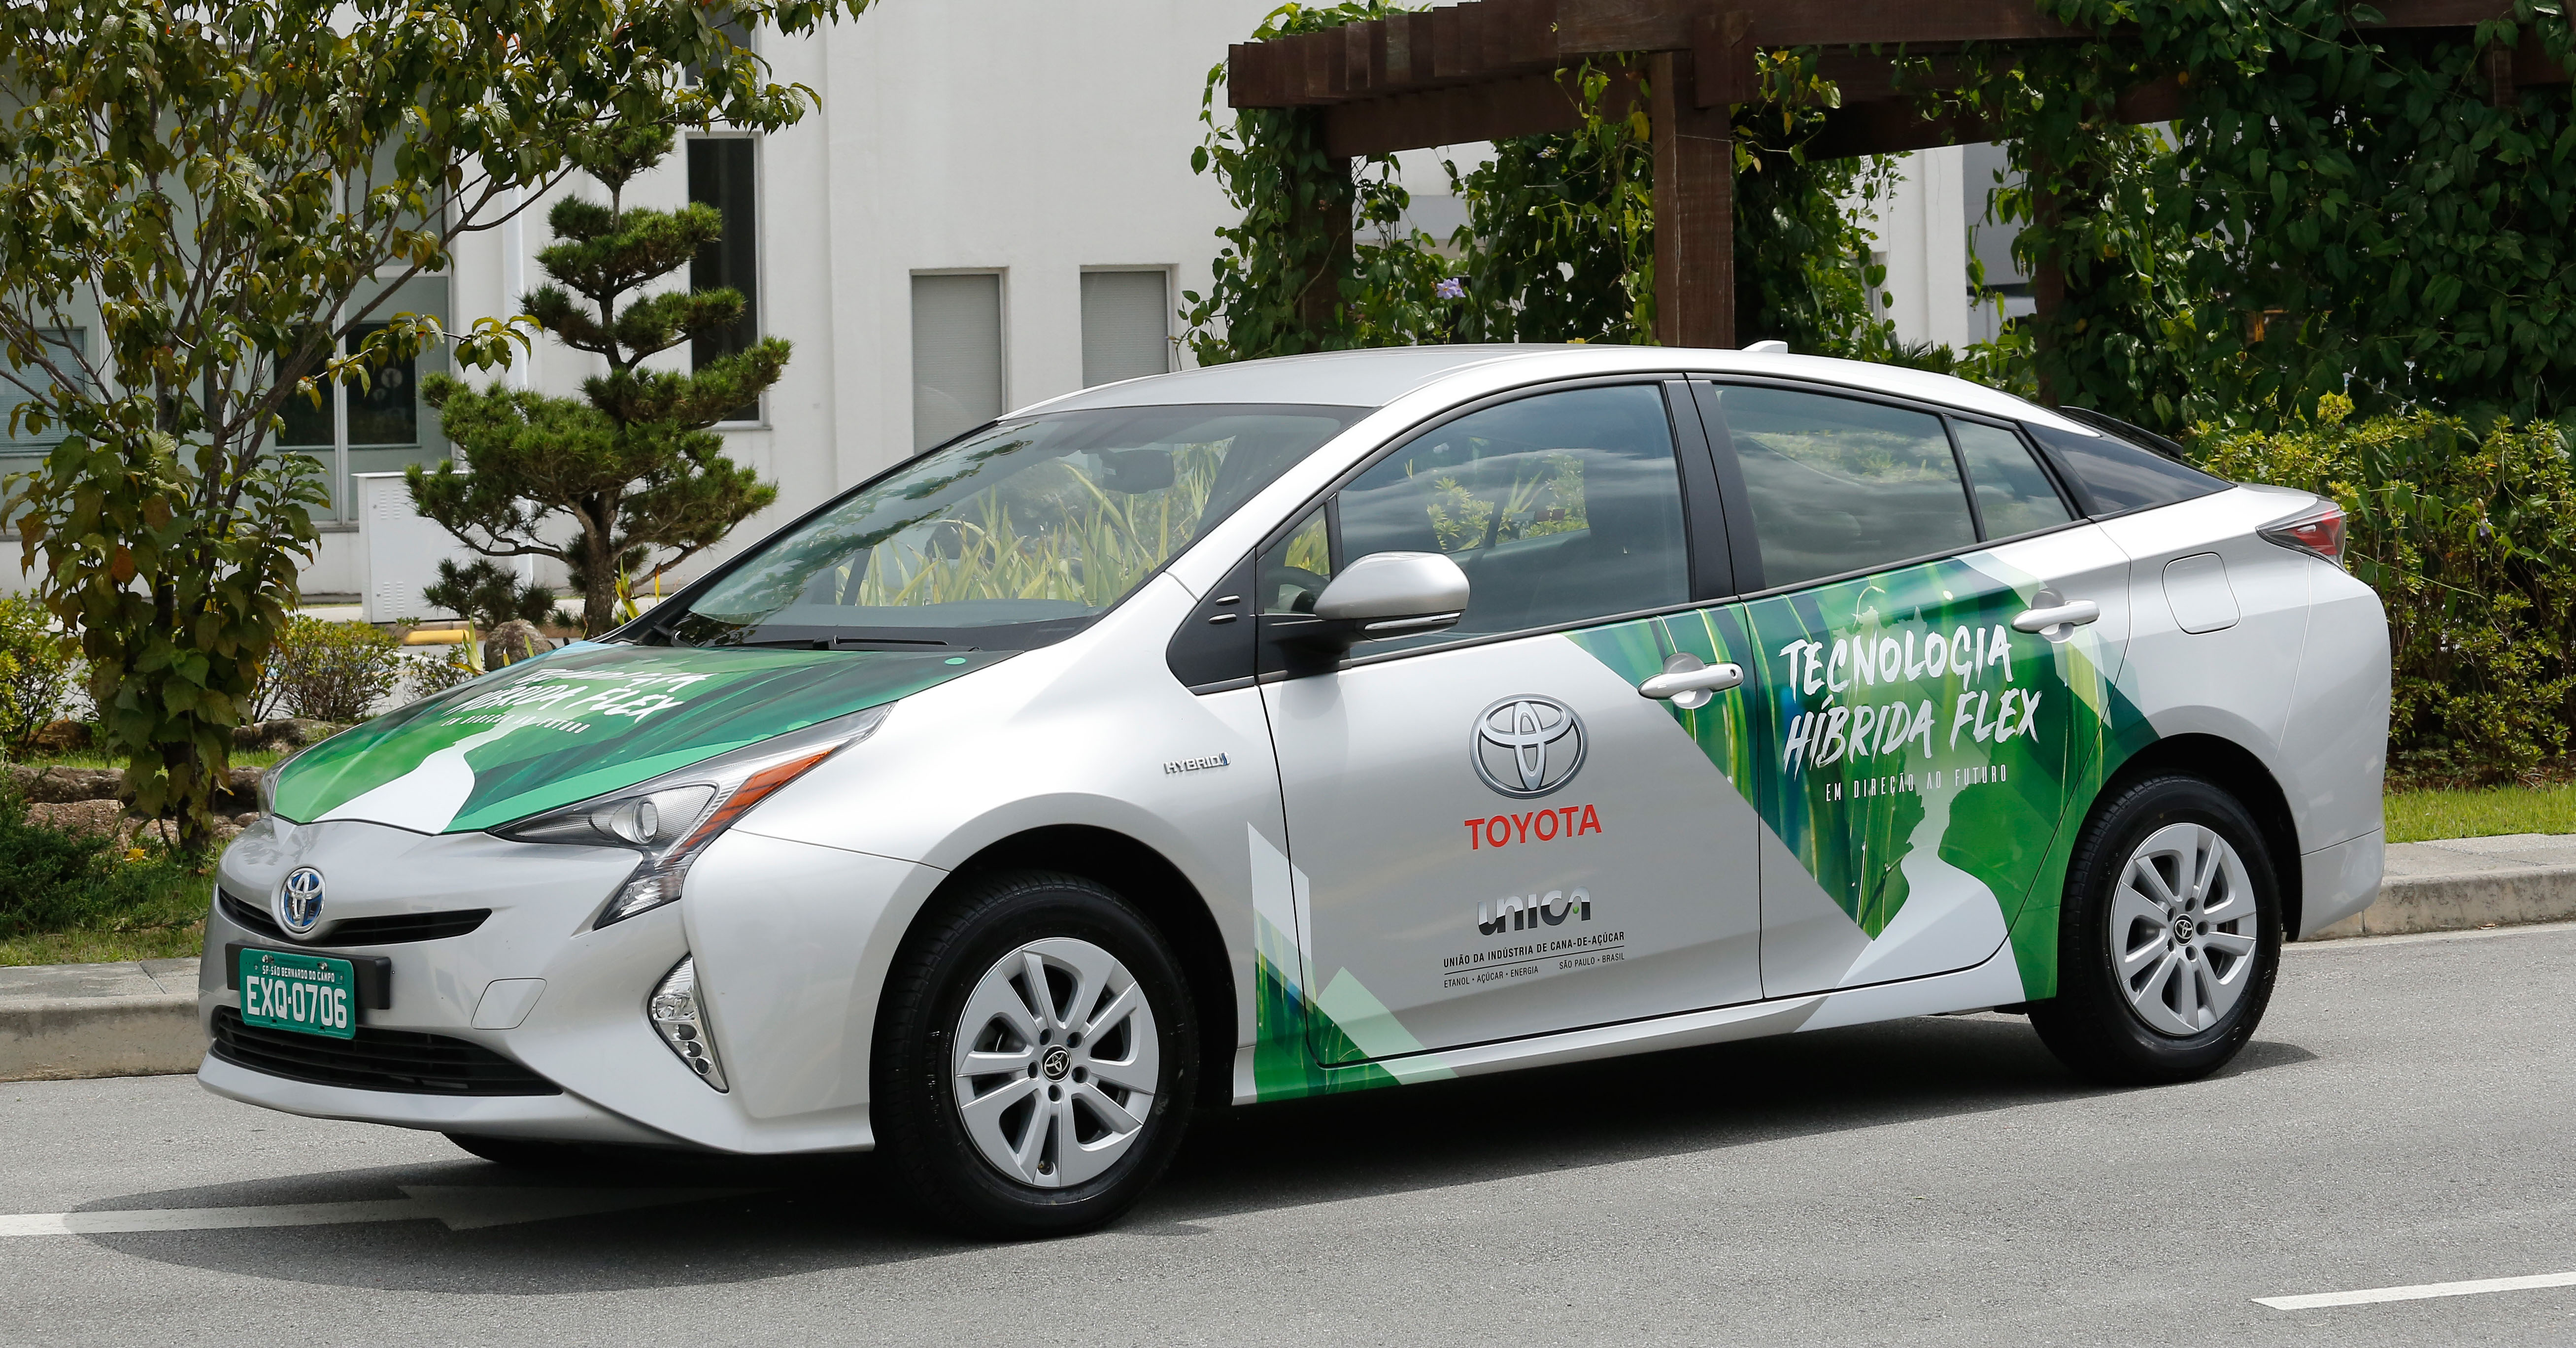 Toyota reveals world's first flexible-fuel hybrid vehicle